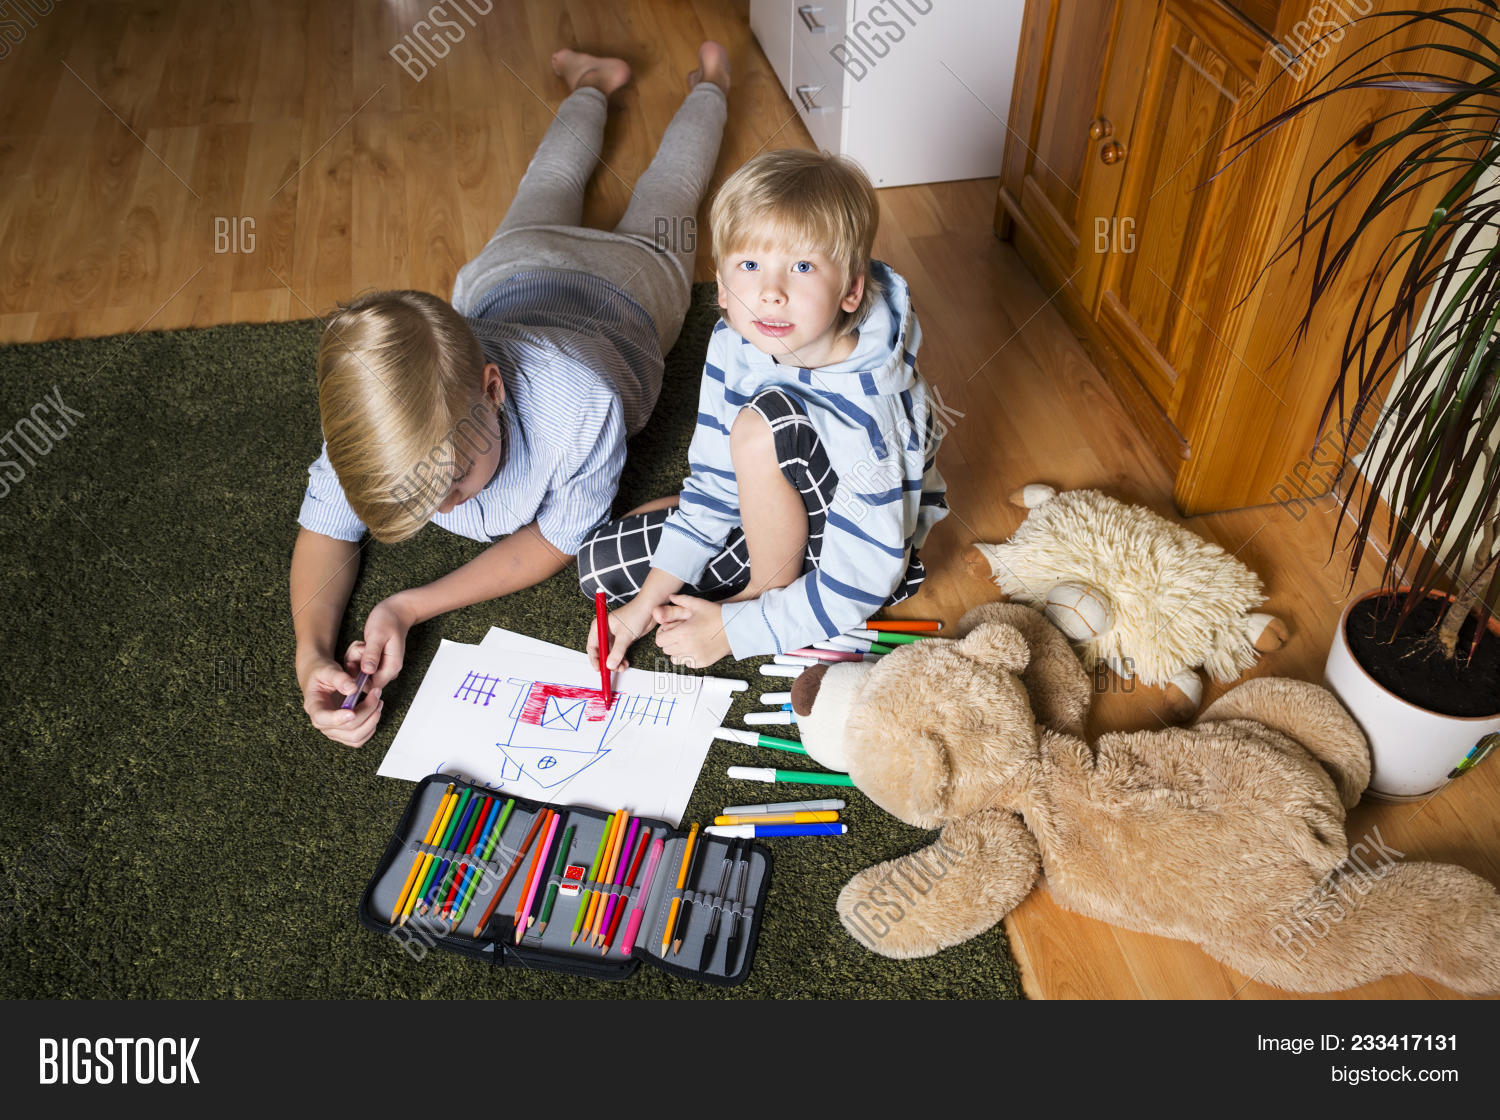 Kids Sitting On Floor Image Photo Free Trial Bigstock